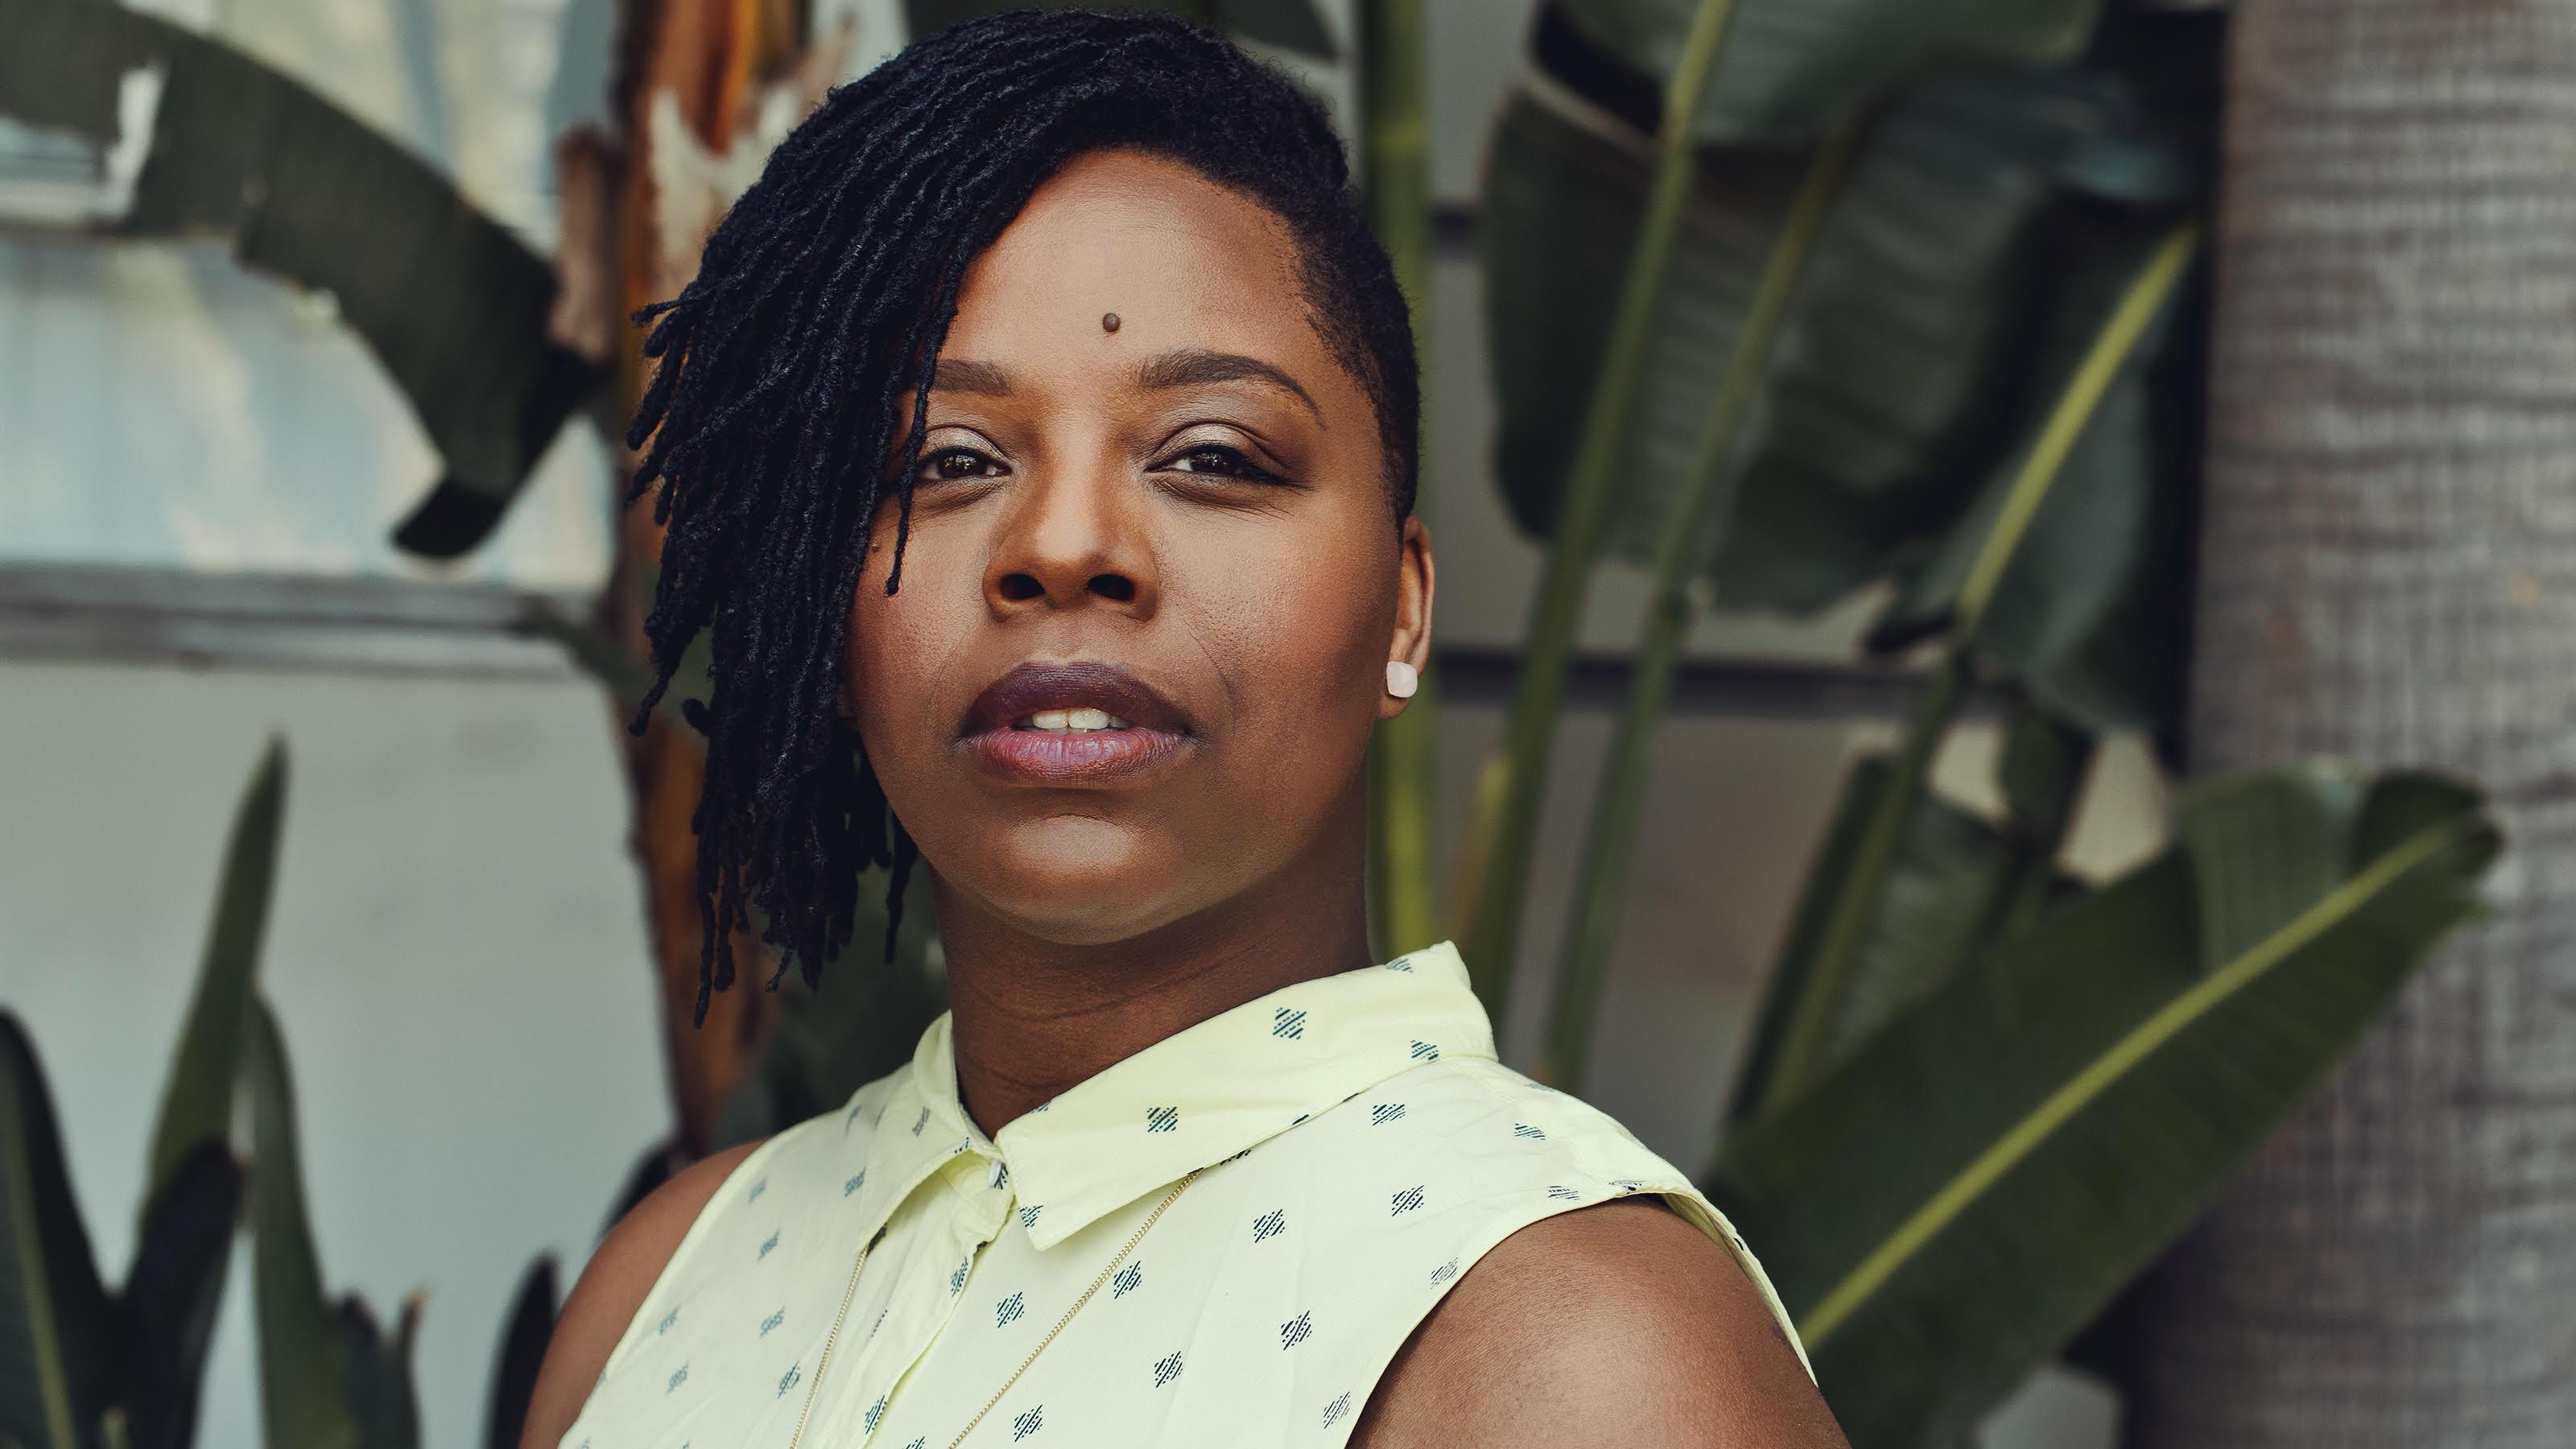 Black Lives Matter cofounder Patrisse Cullors is leading and directing Intiman's production of POWER.